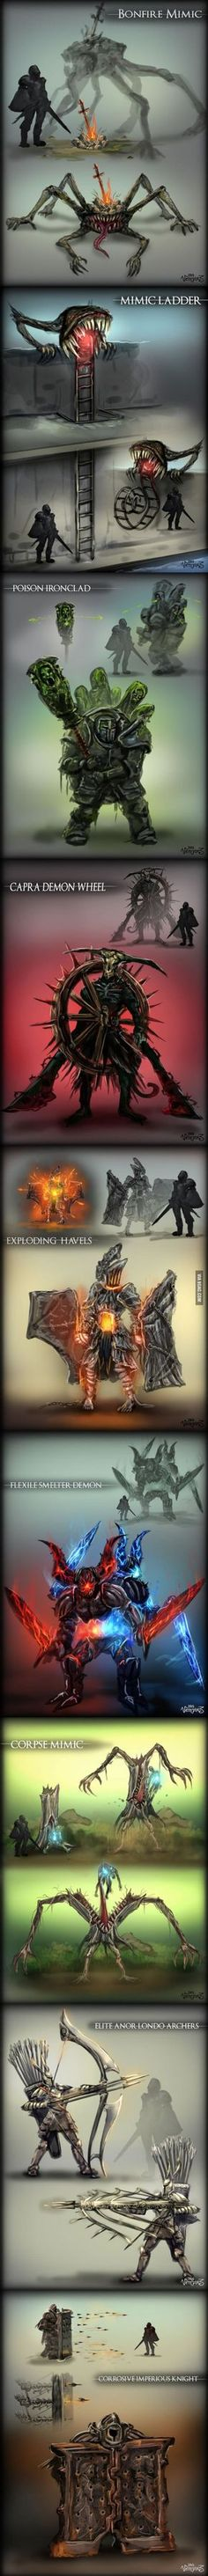 Very creative! Dark Souls ftw. I don't think I could handle any of these, and that mimic corpse, a sweet prize disguised as death!